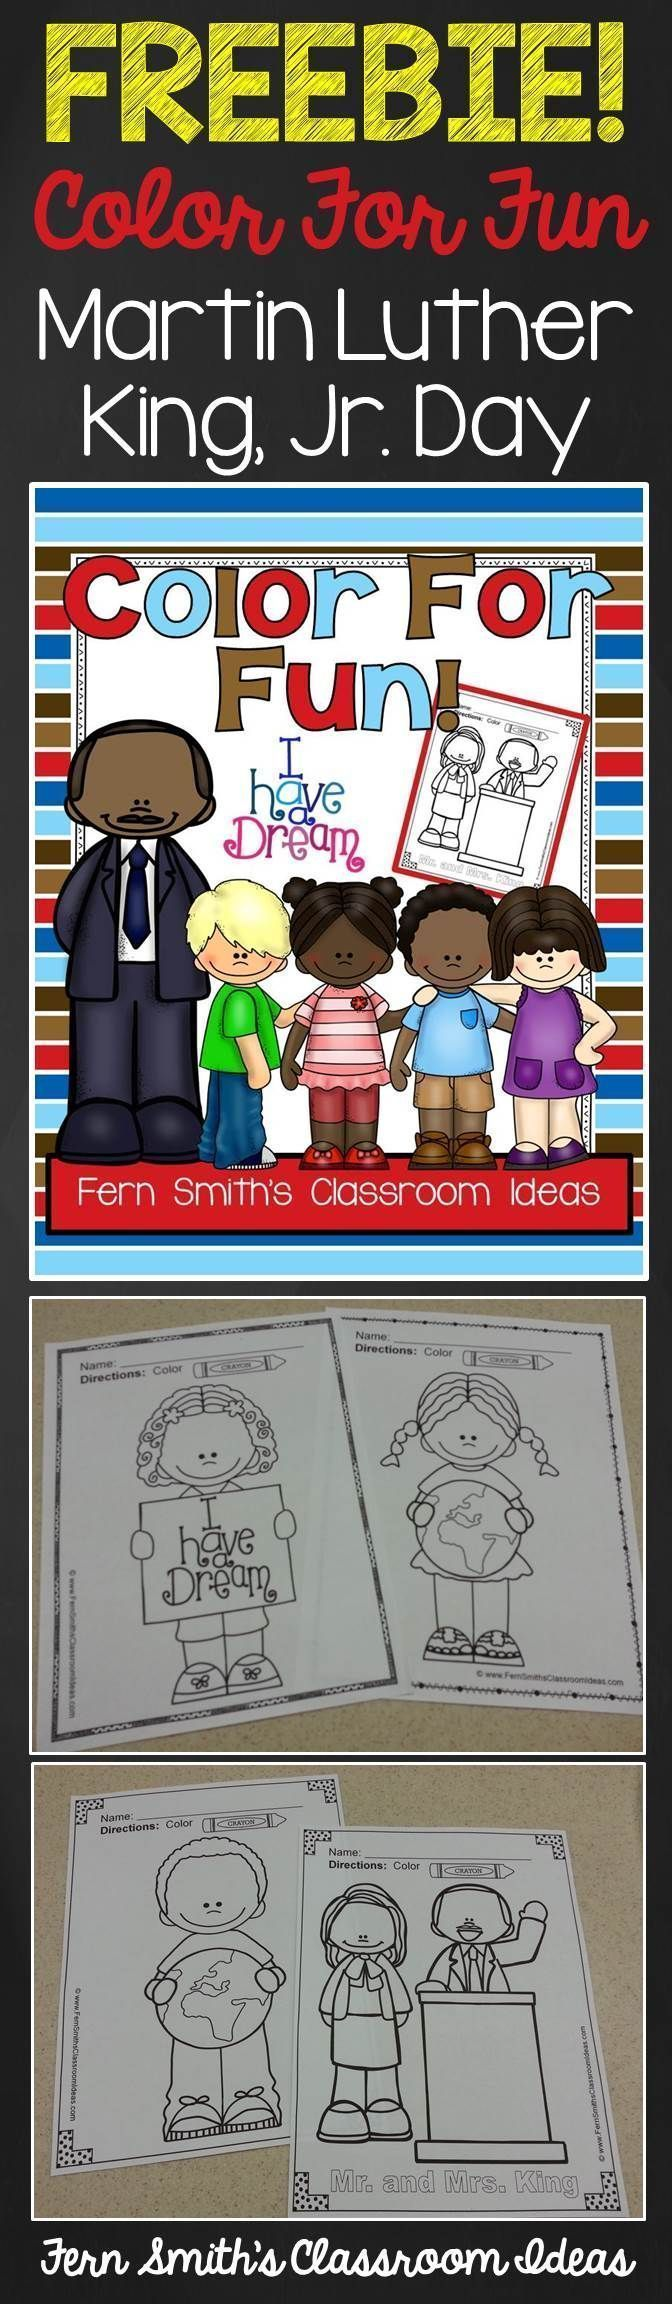 FREE Martin Luther King, Jr. Color For Fun Printable Coloring Pages #FernSmithsClassroomIdeas